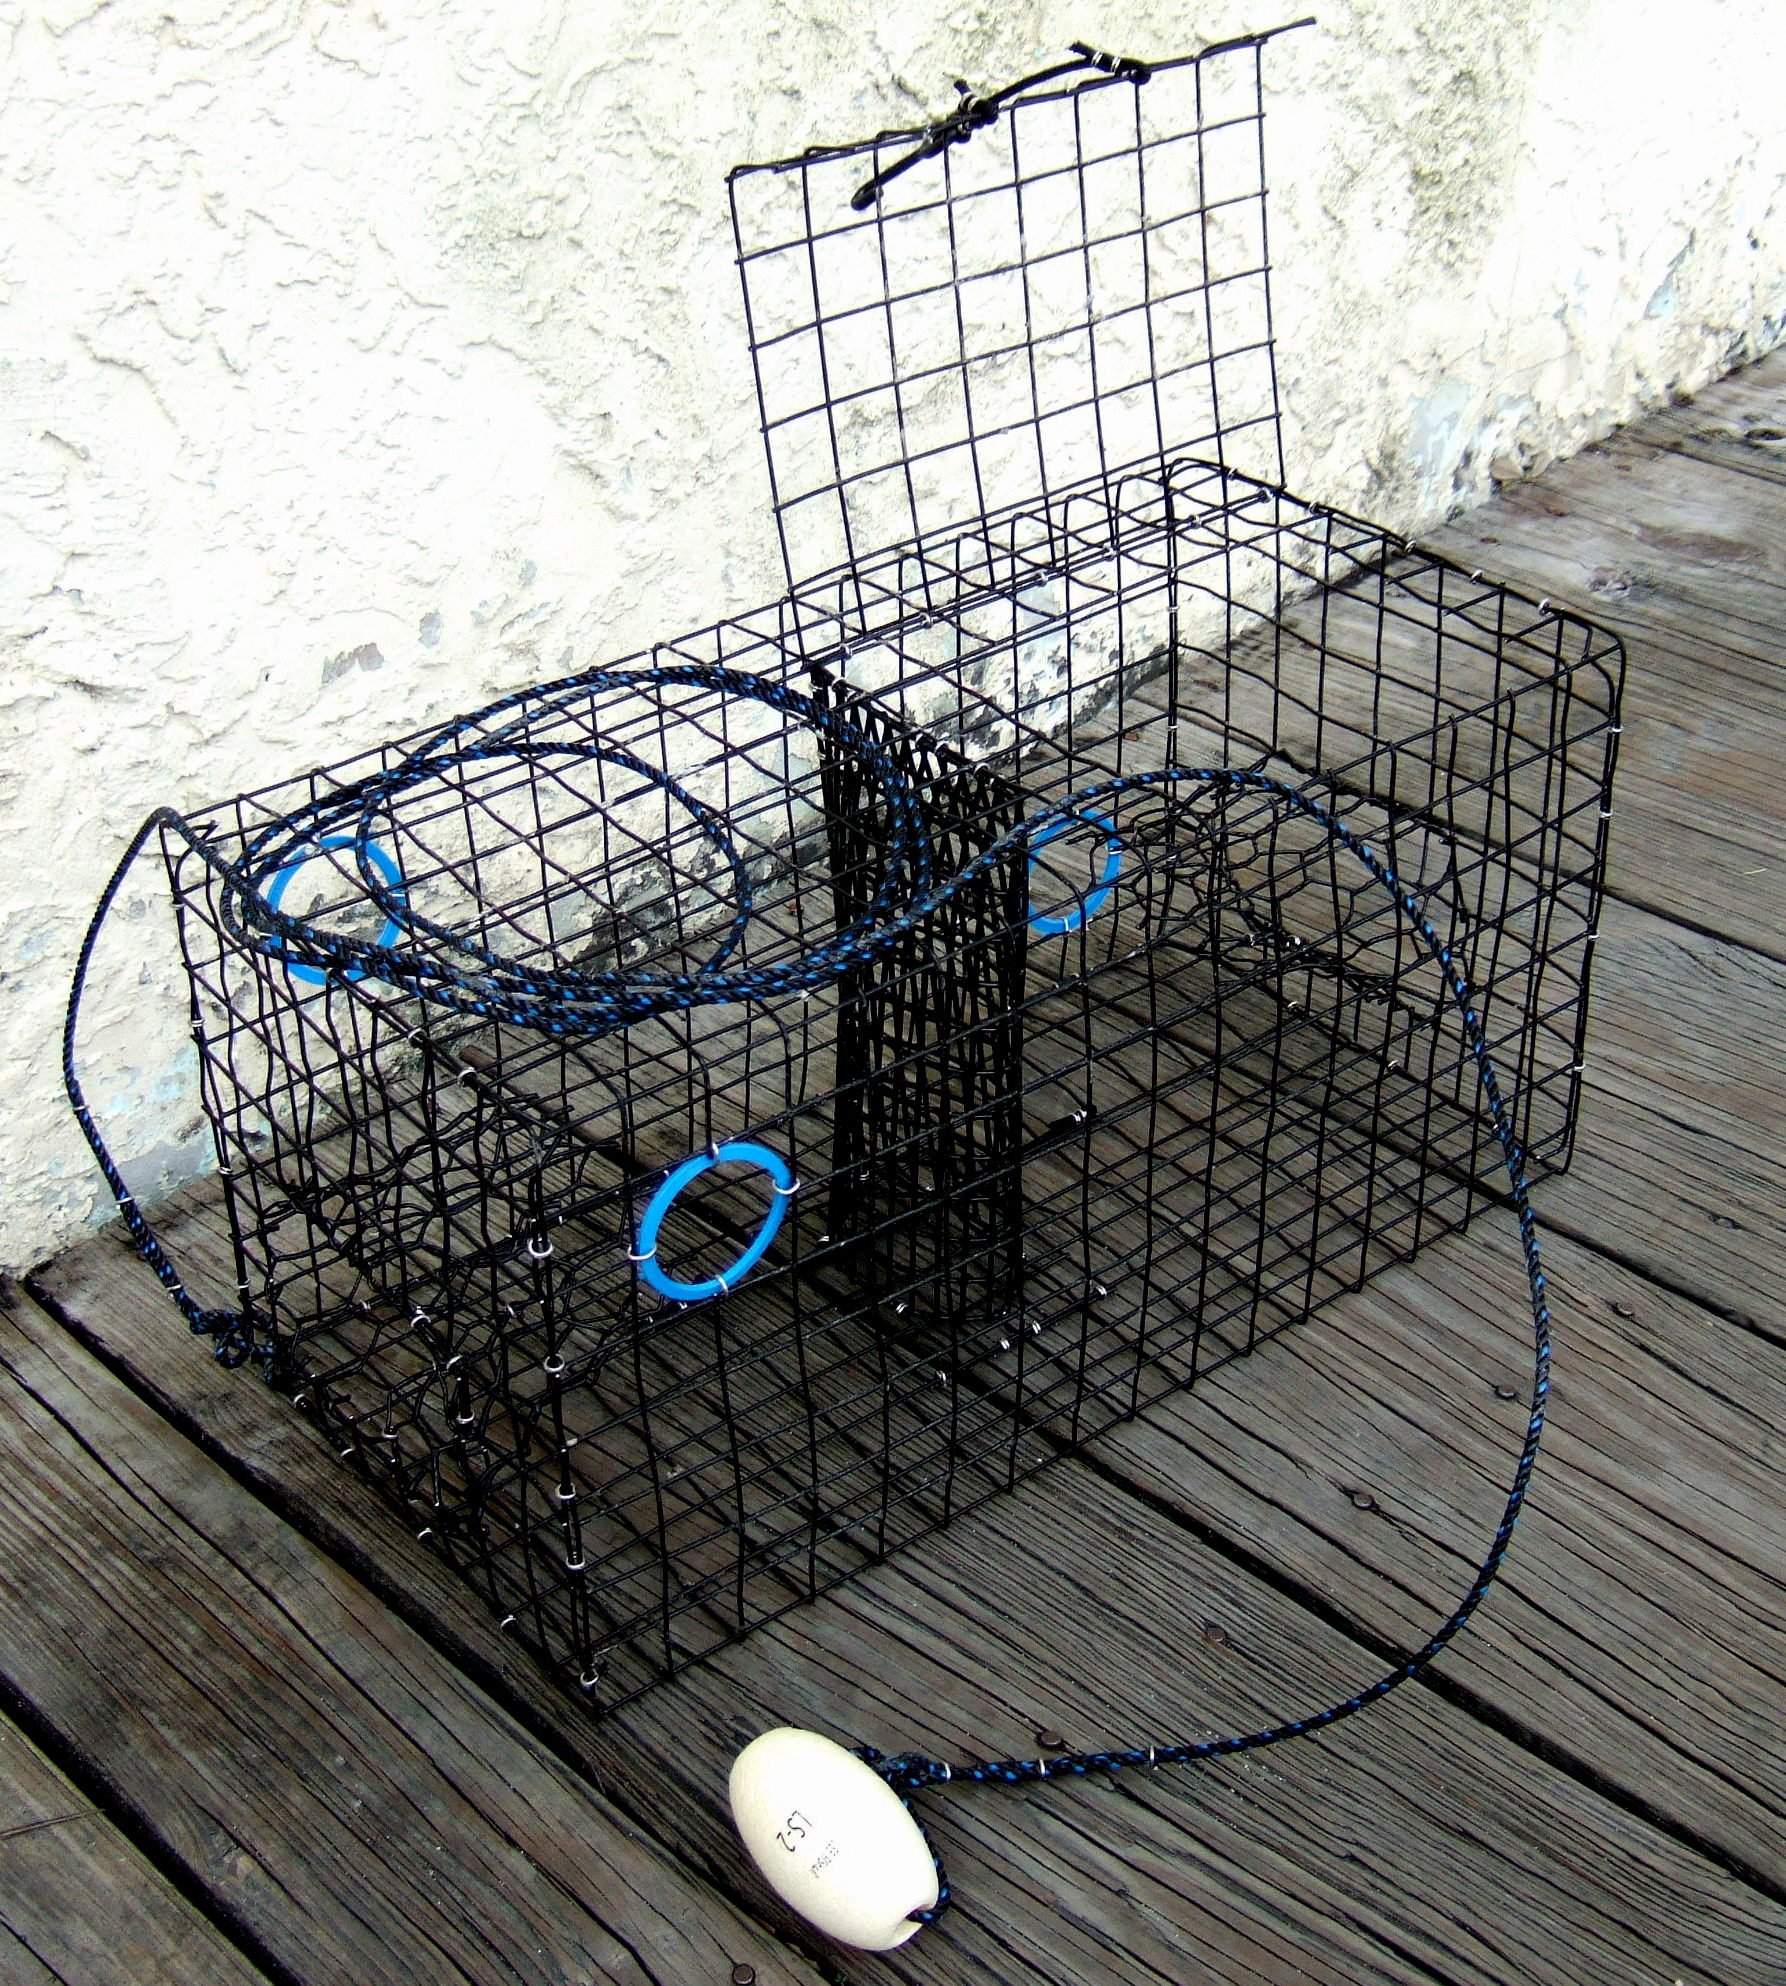 Maryland Blue crab pot trap, pvc coated wire mesh, heavy duty